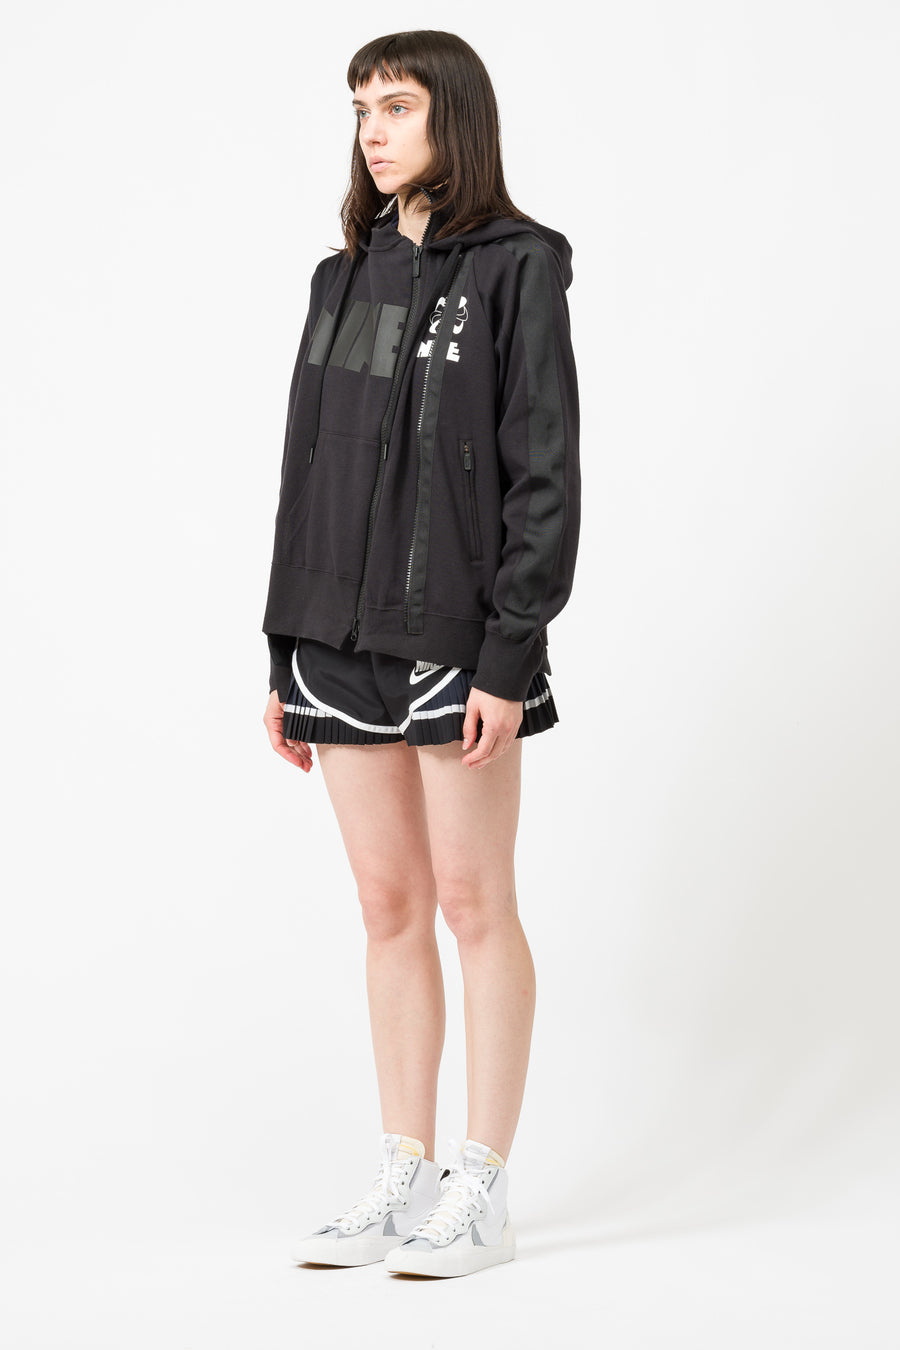 Nike Sacai Double Zip Hoodie in Black/Dark Obsidian - Notre